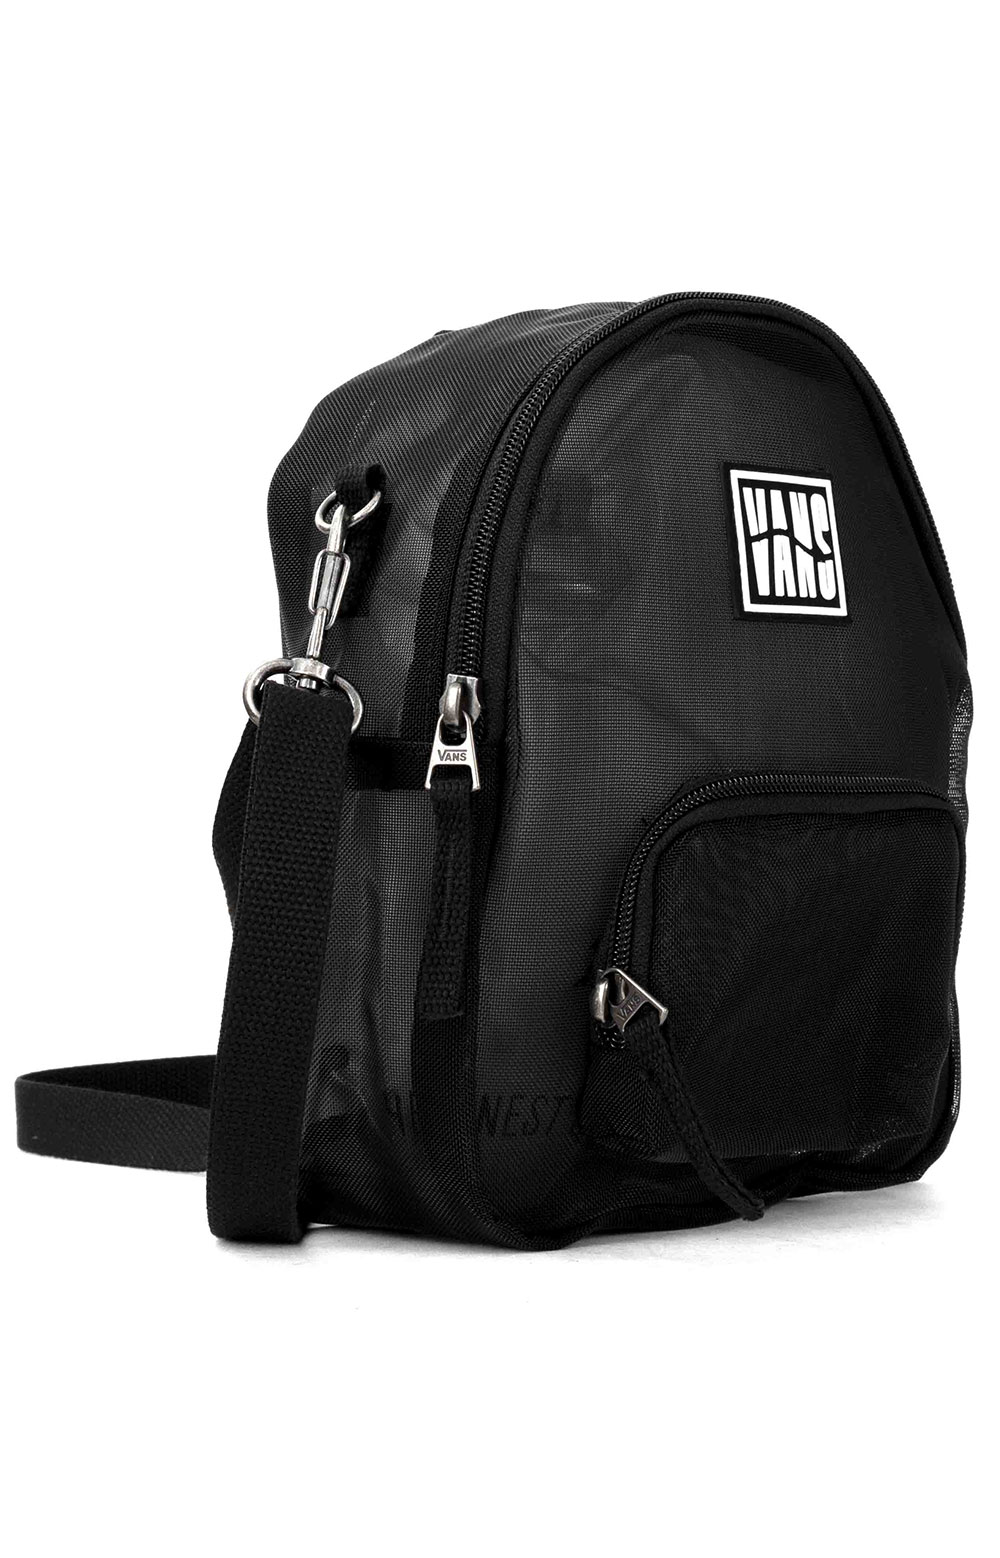 Two Timing Mesh Mini Backpack/Bag - Black 2